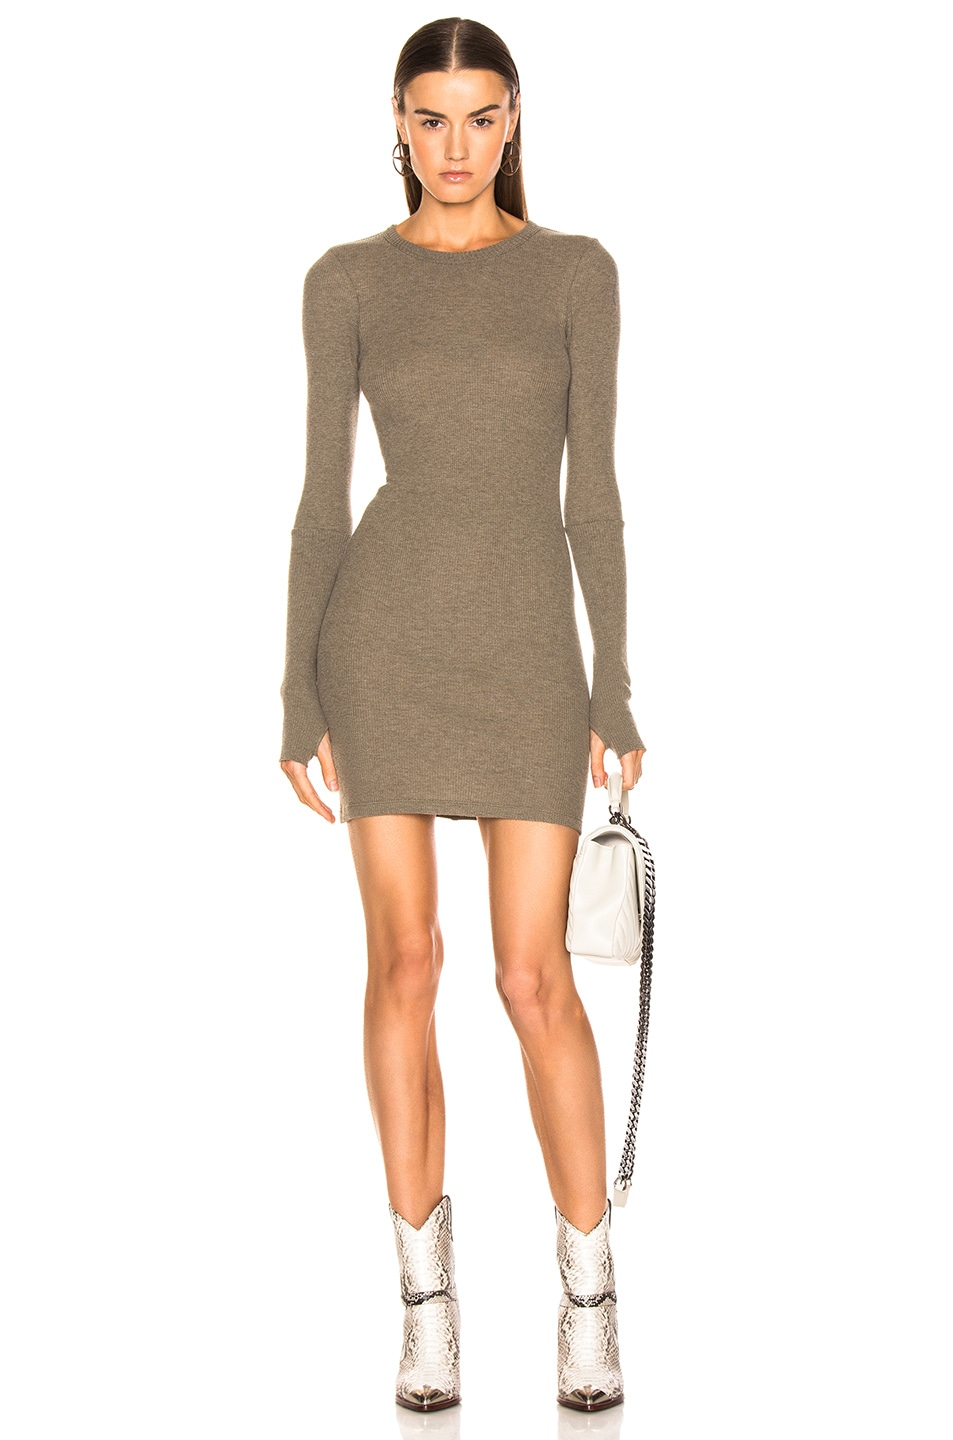 Image 1 of Enza Costa Cashmere Thermal Long Sleeve Crew Mini Dress in Pebble